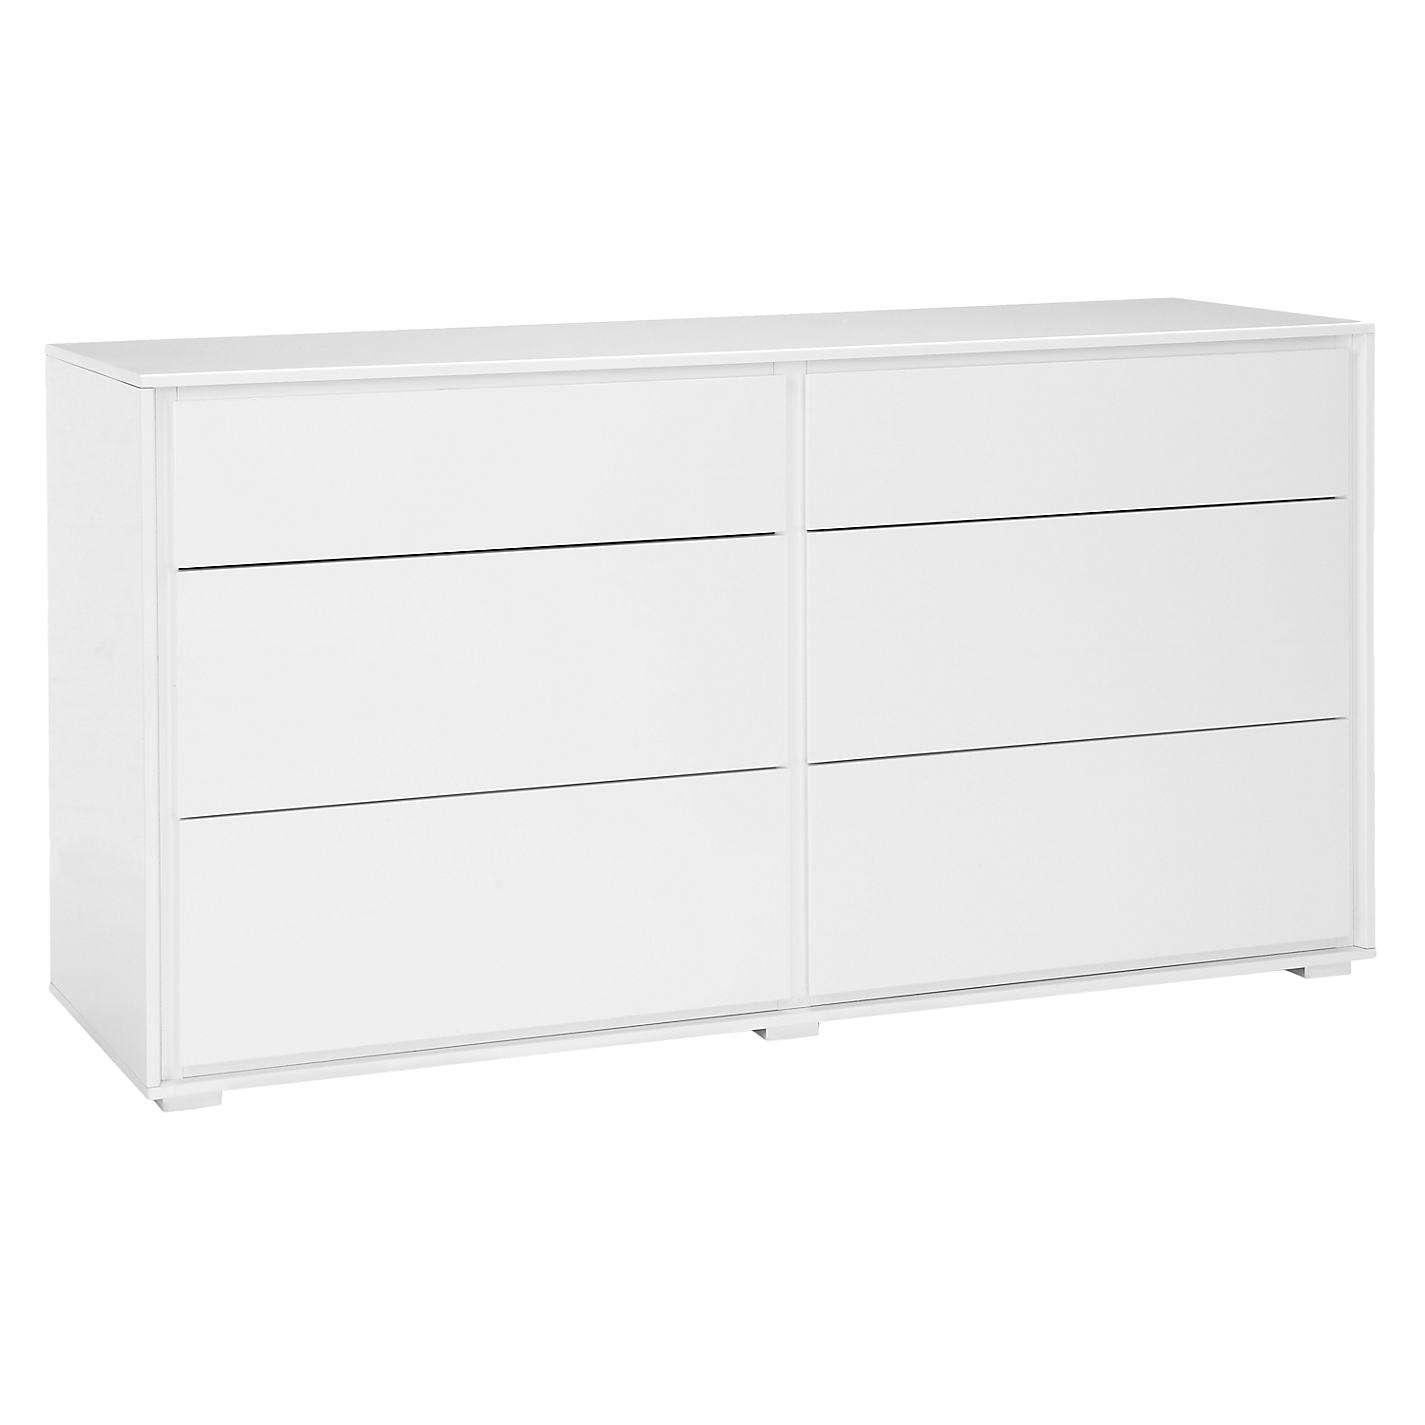 Queen 6 drawer wide white high gloss chest manhattan white high gloss 6 drawer chest of frances M s home furniture uk